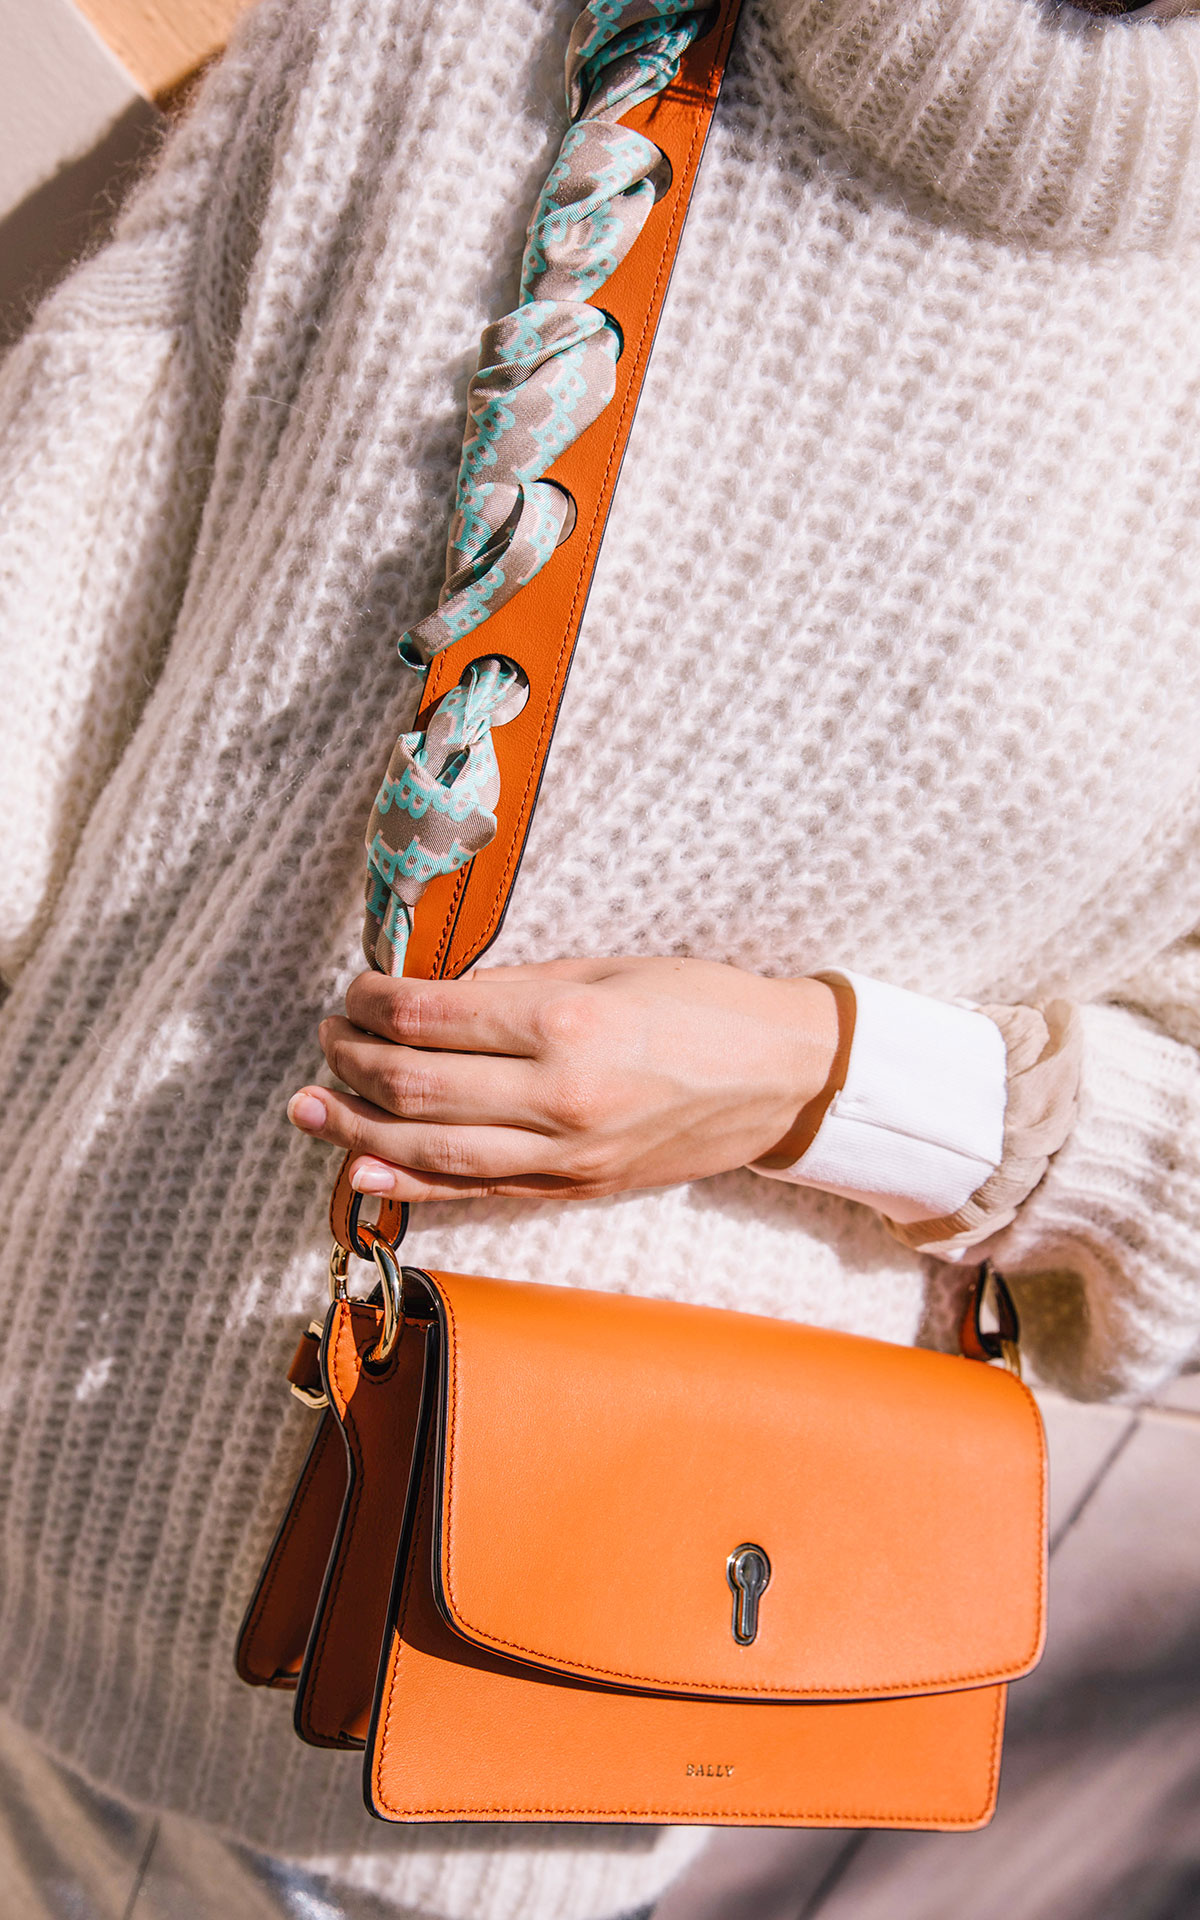 Woman with a orange shoulder bag